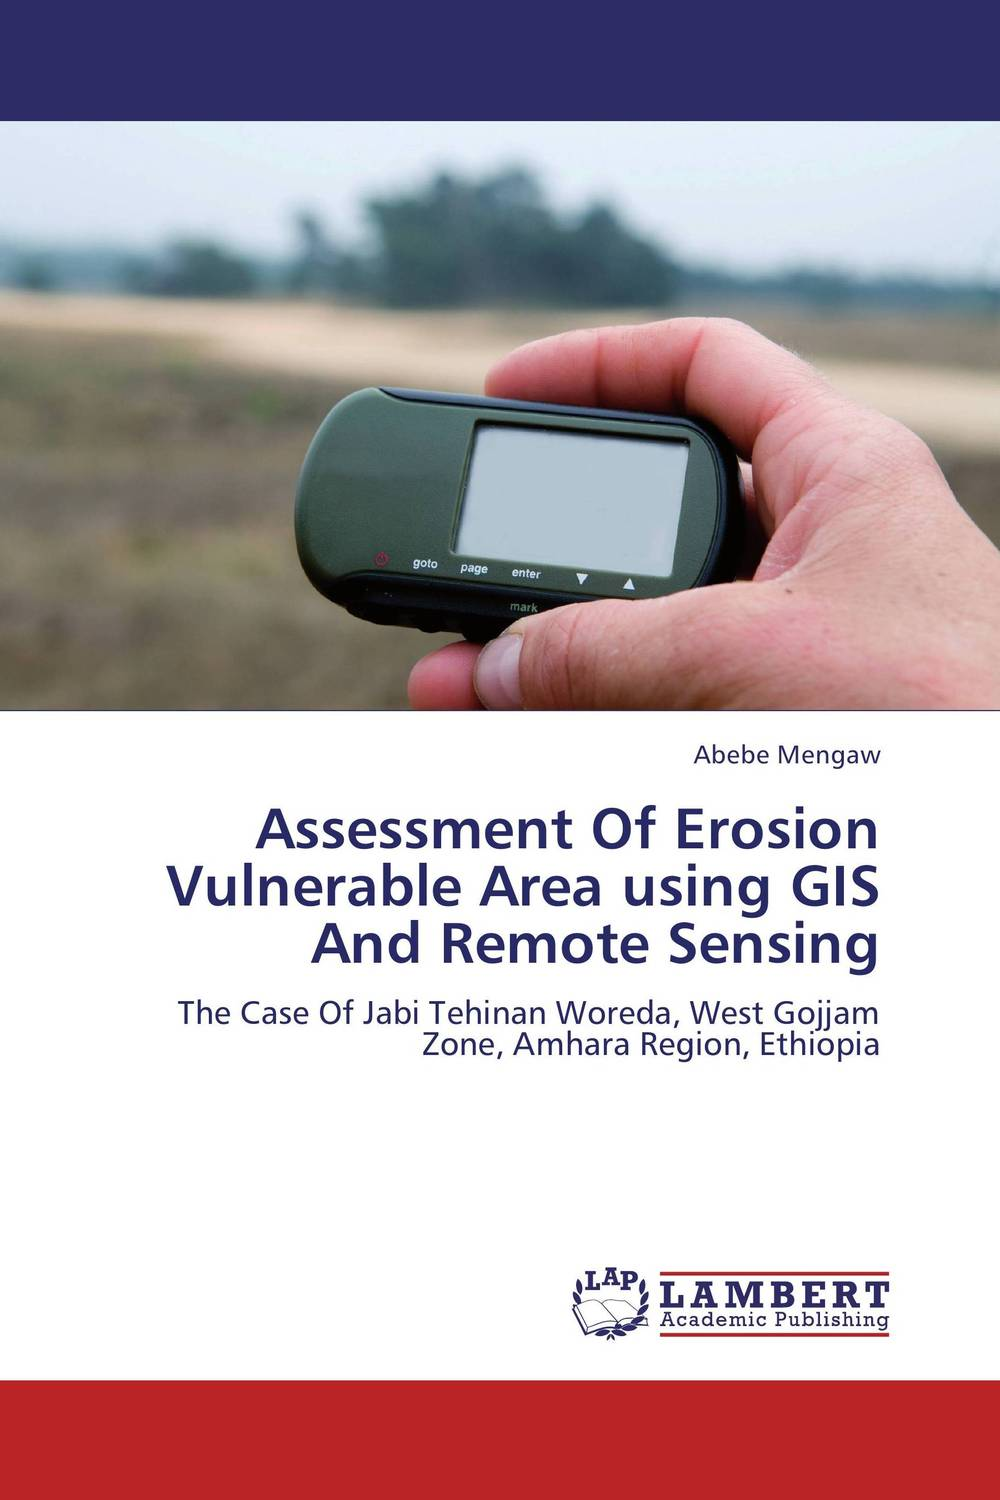 Assessment Of Erosion Vulnerable Area using GIS And Remote Sensing